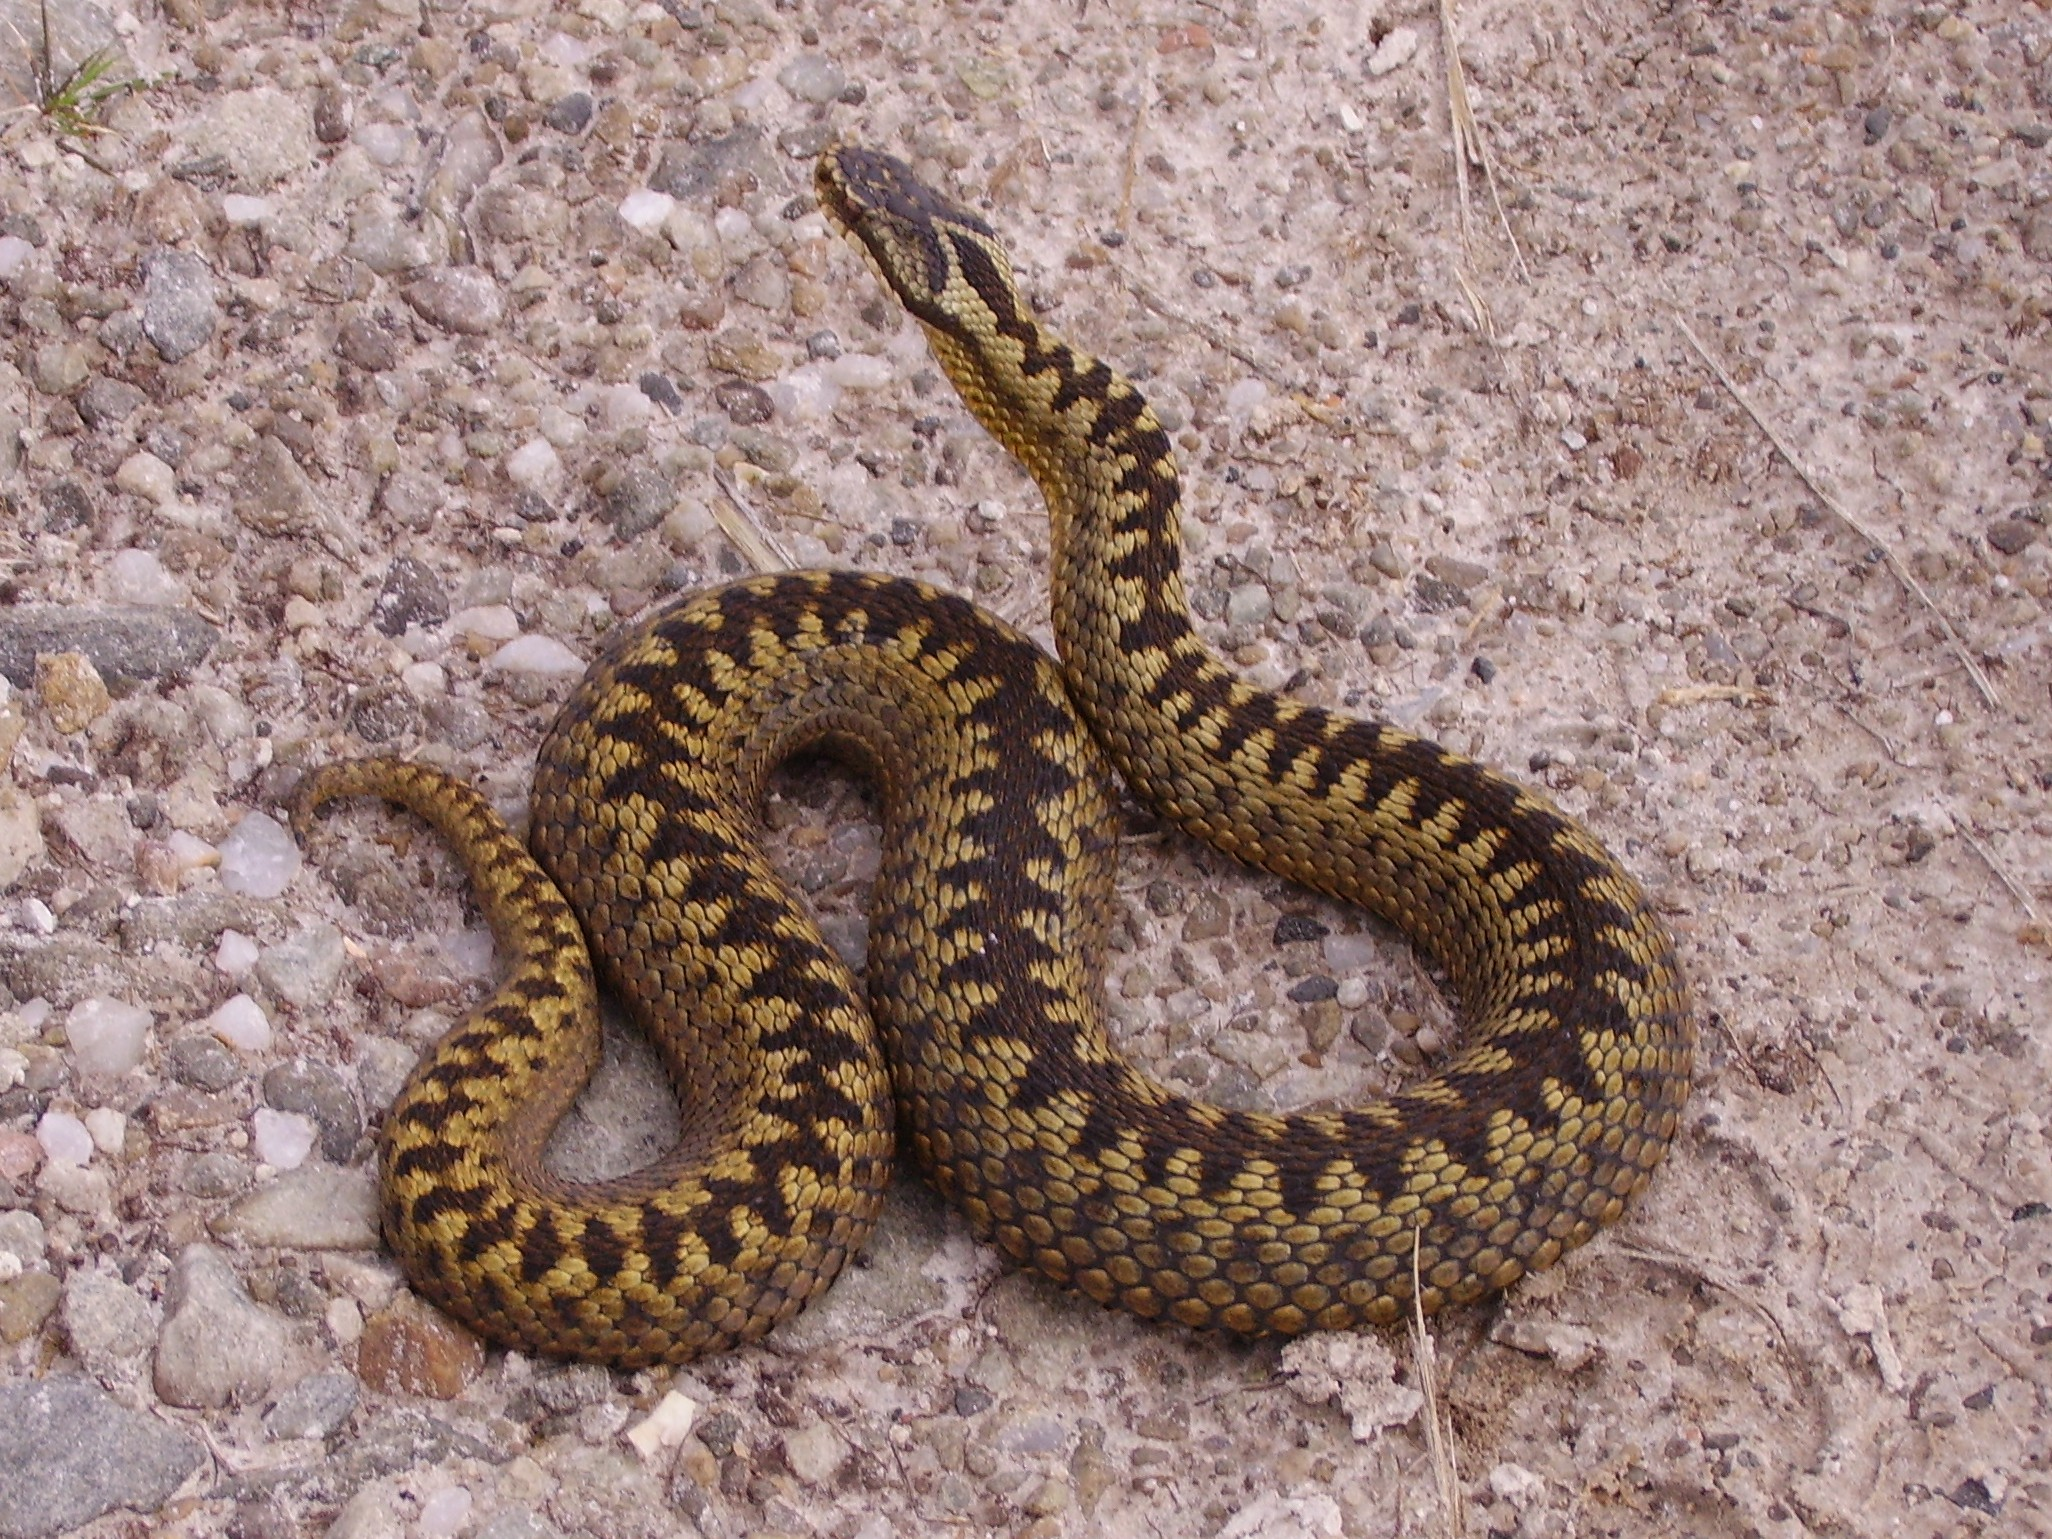 Picture of an adder Source: https://commons.wikimedia.org/wiki/File%3ALoch_Shin_adder.JPG